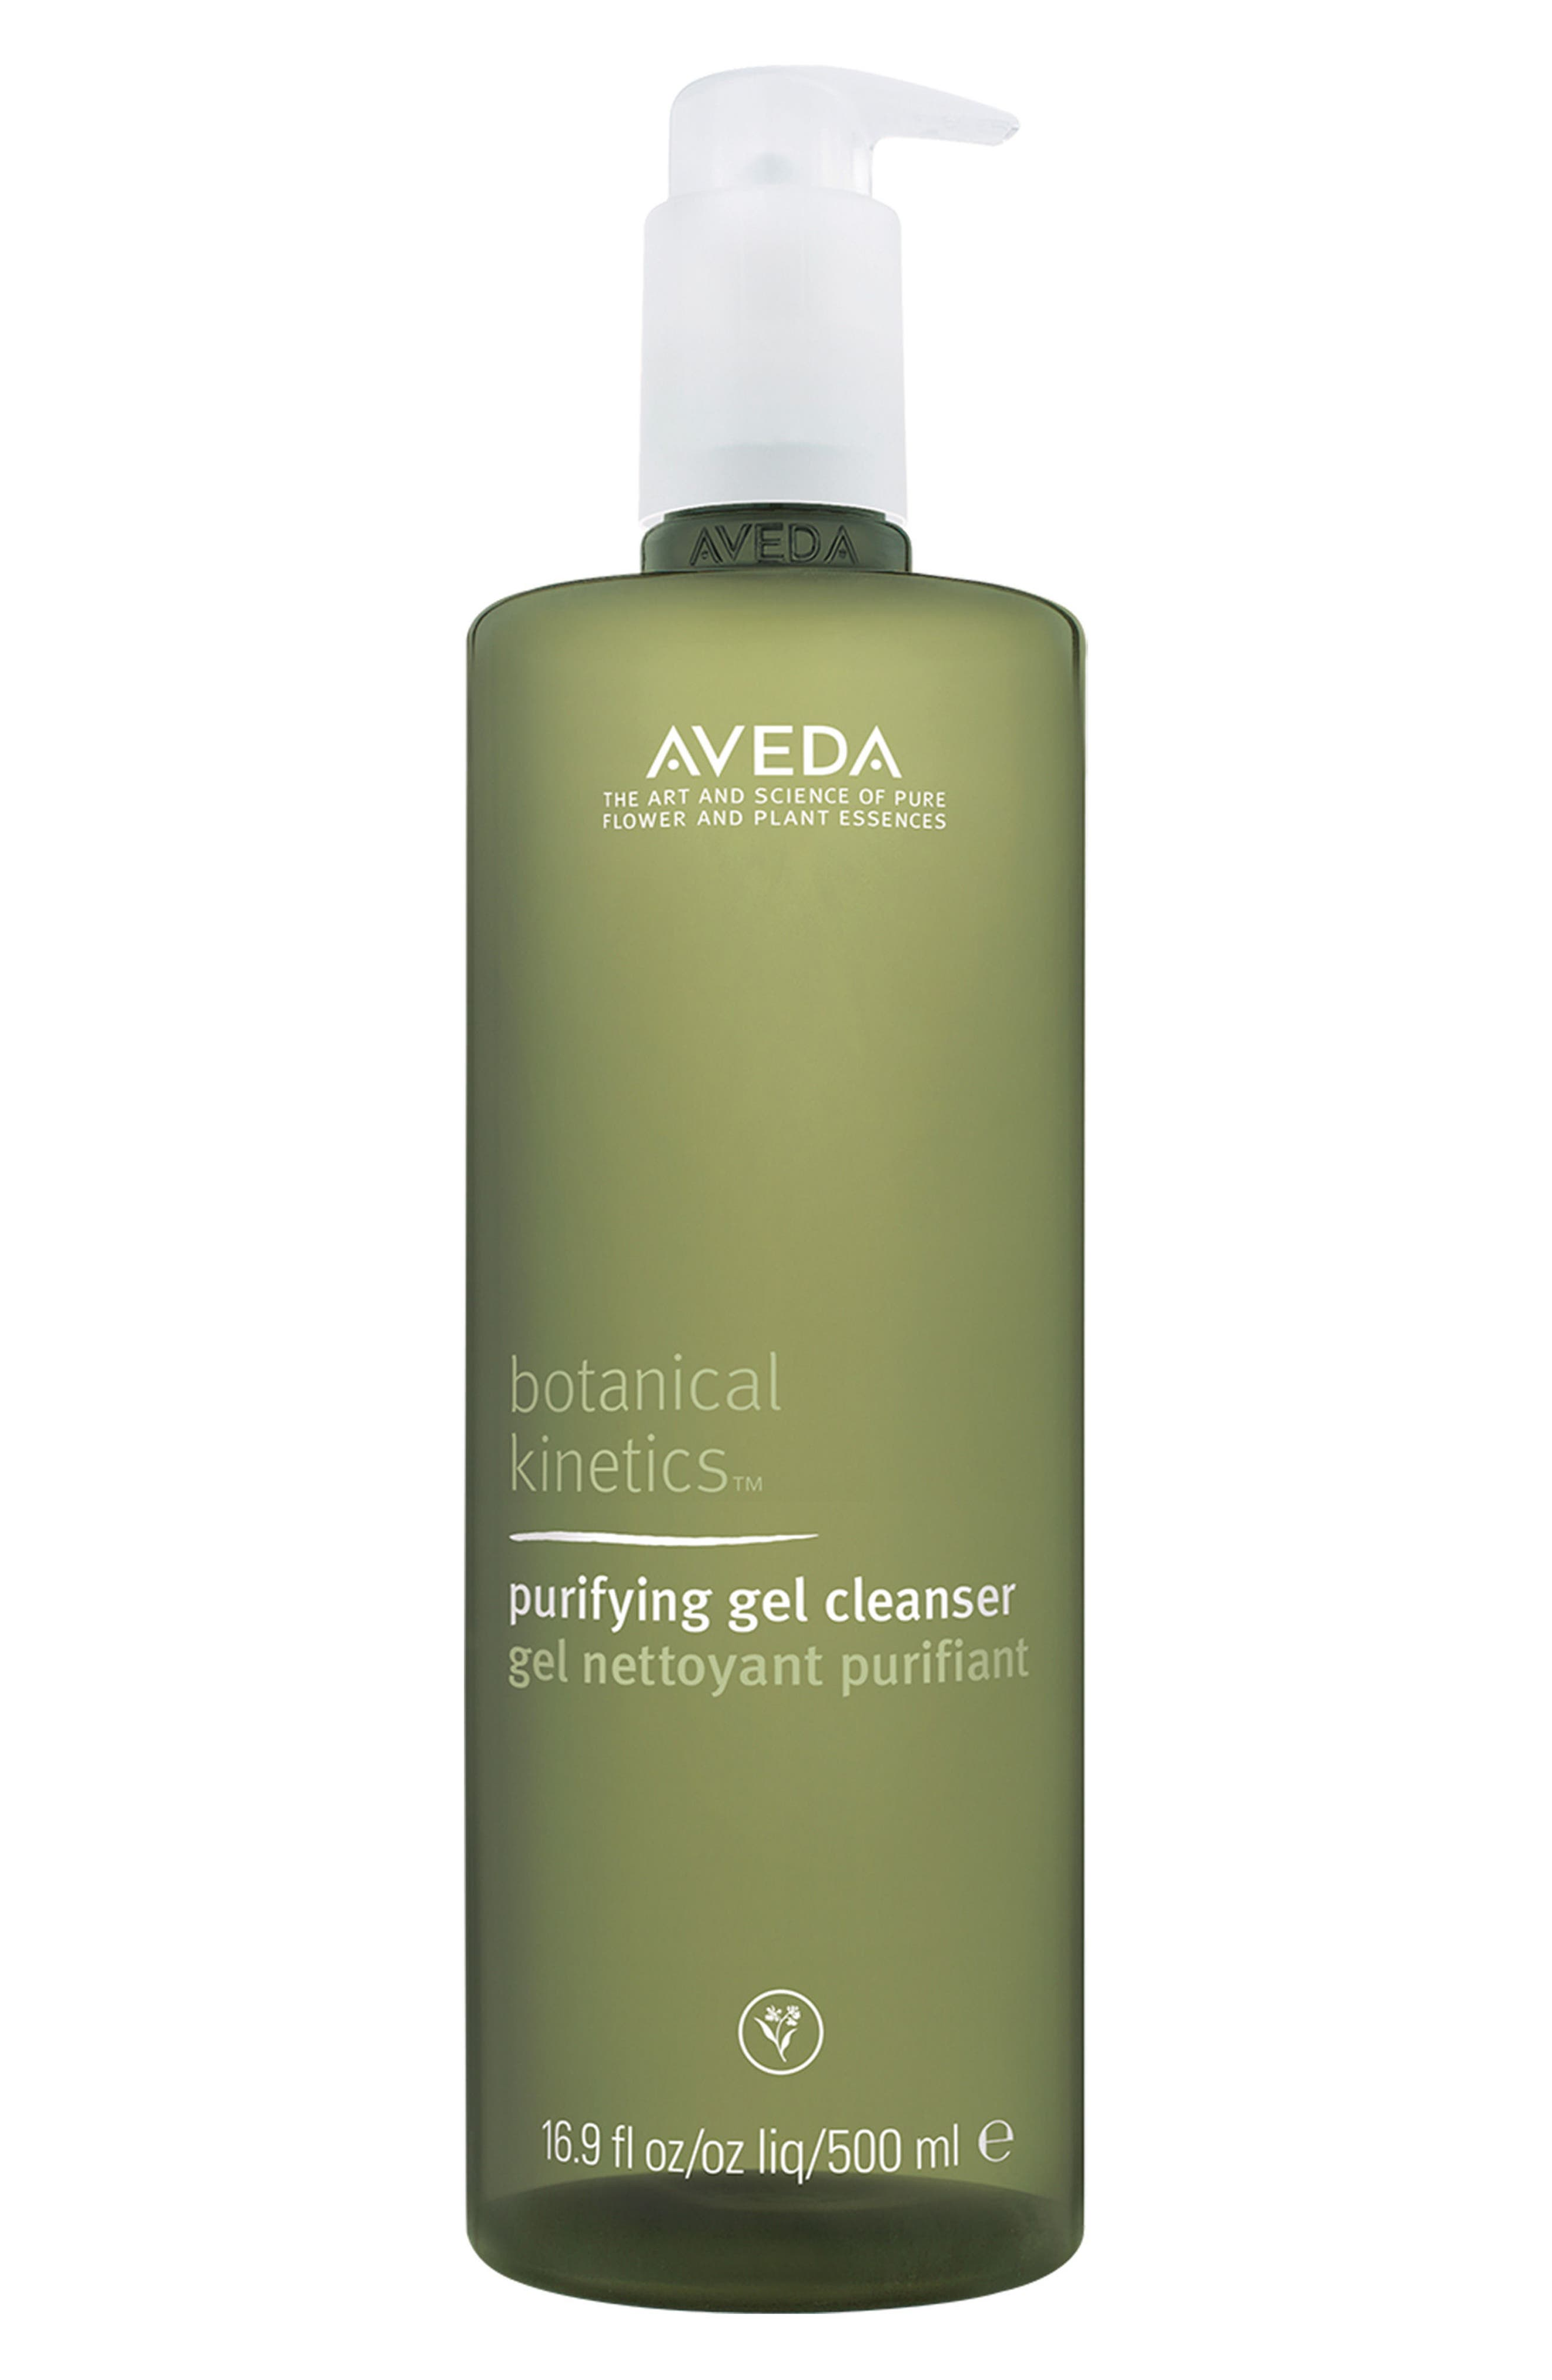 Alternate Image 1 Selected - Aveda 'botanical kinetics™' Purifying Gel Cleanser